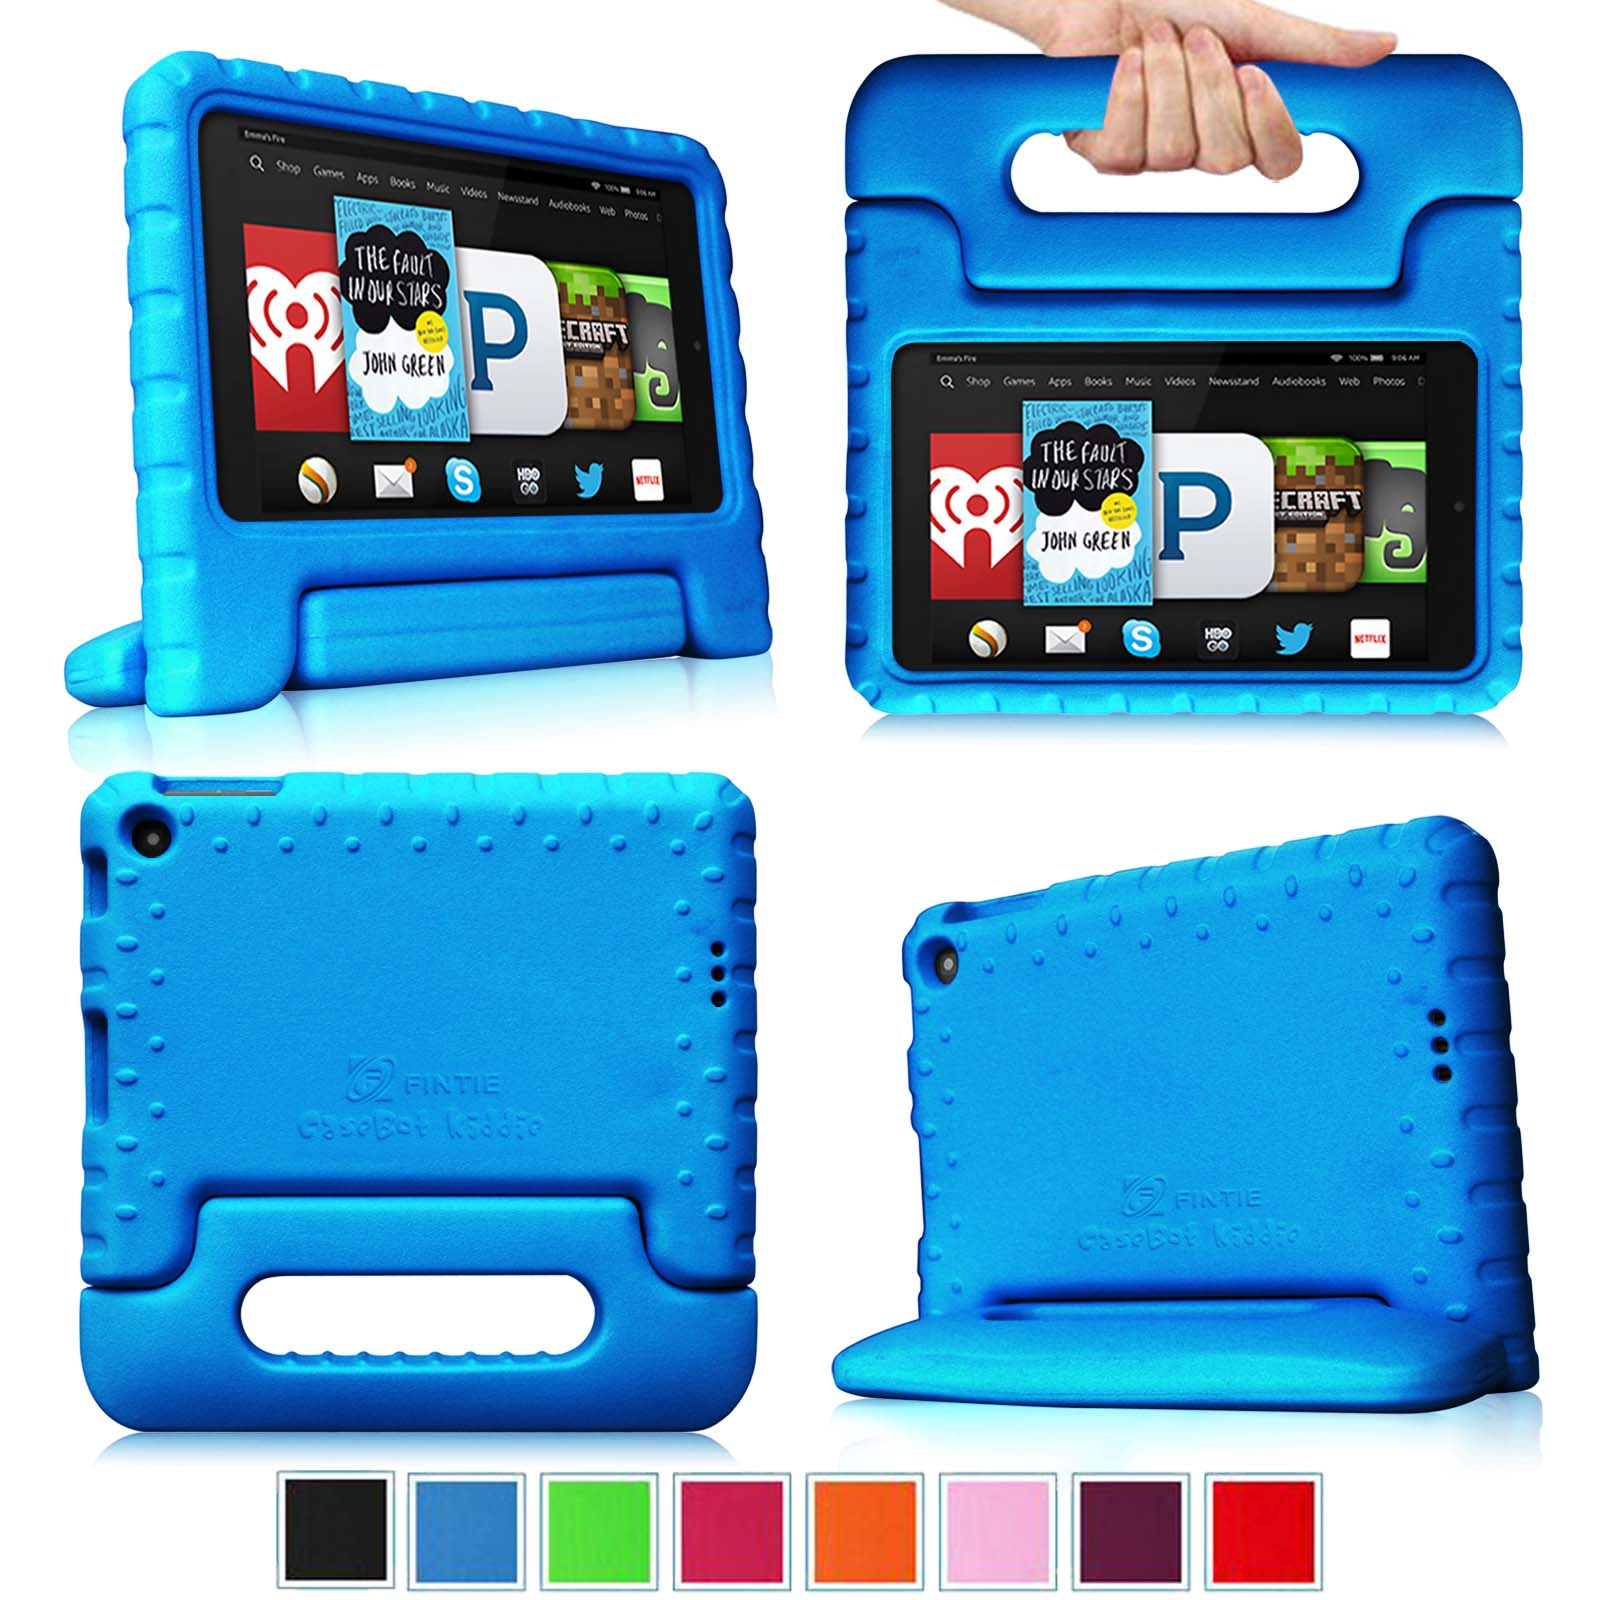 Fintie Light Weight Shock Proof Handle Case for Kids Specially made for Kindle Fire HD 6 2014 Oct Release, Blue